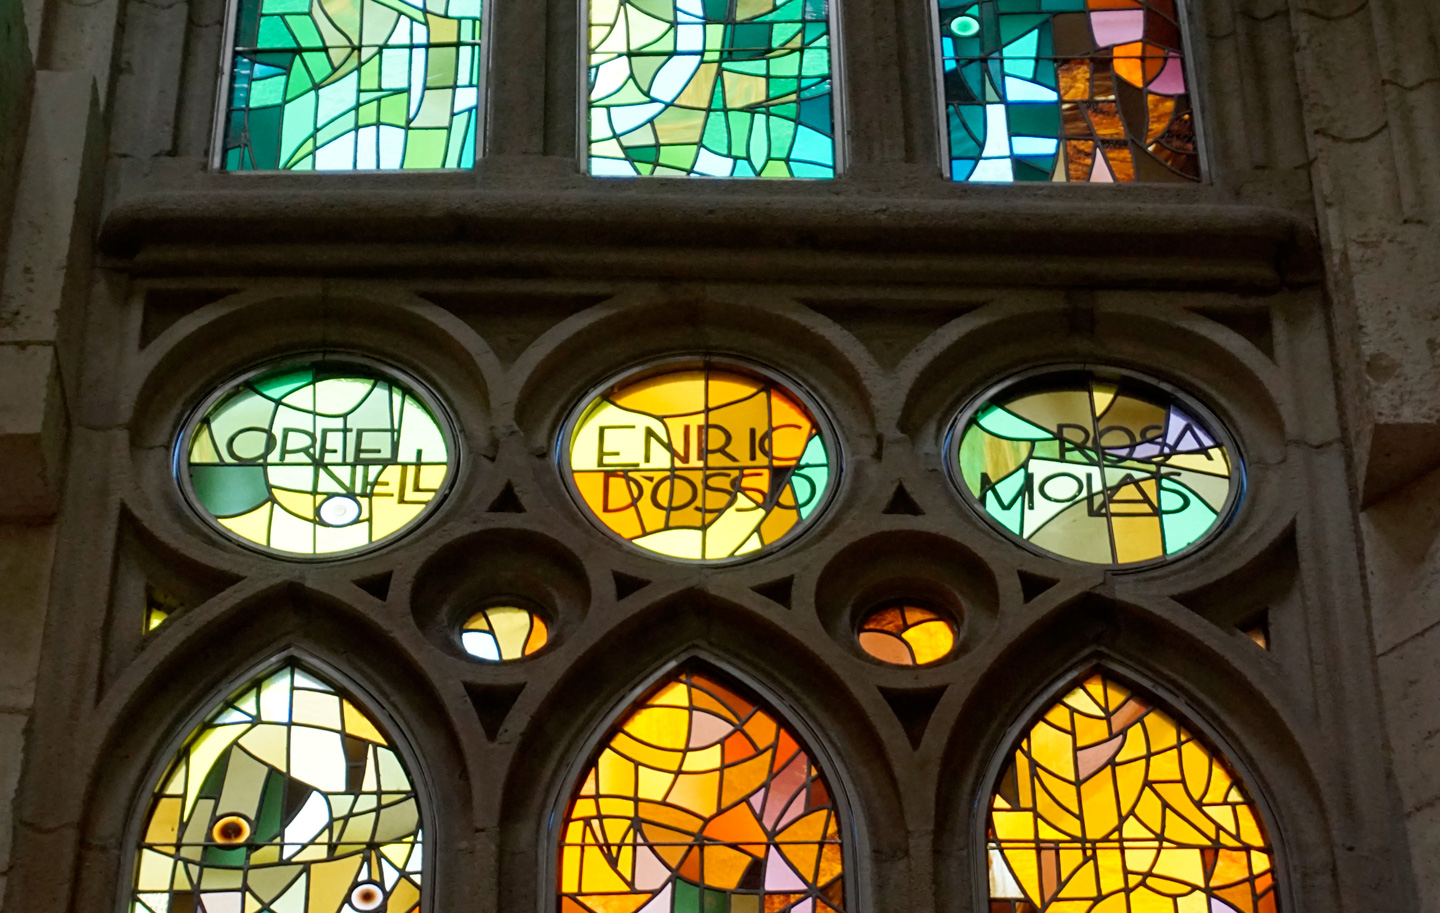 Art Deco style sans-serifs on the stained glass panels